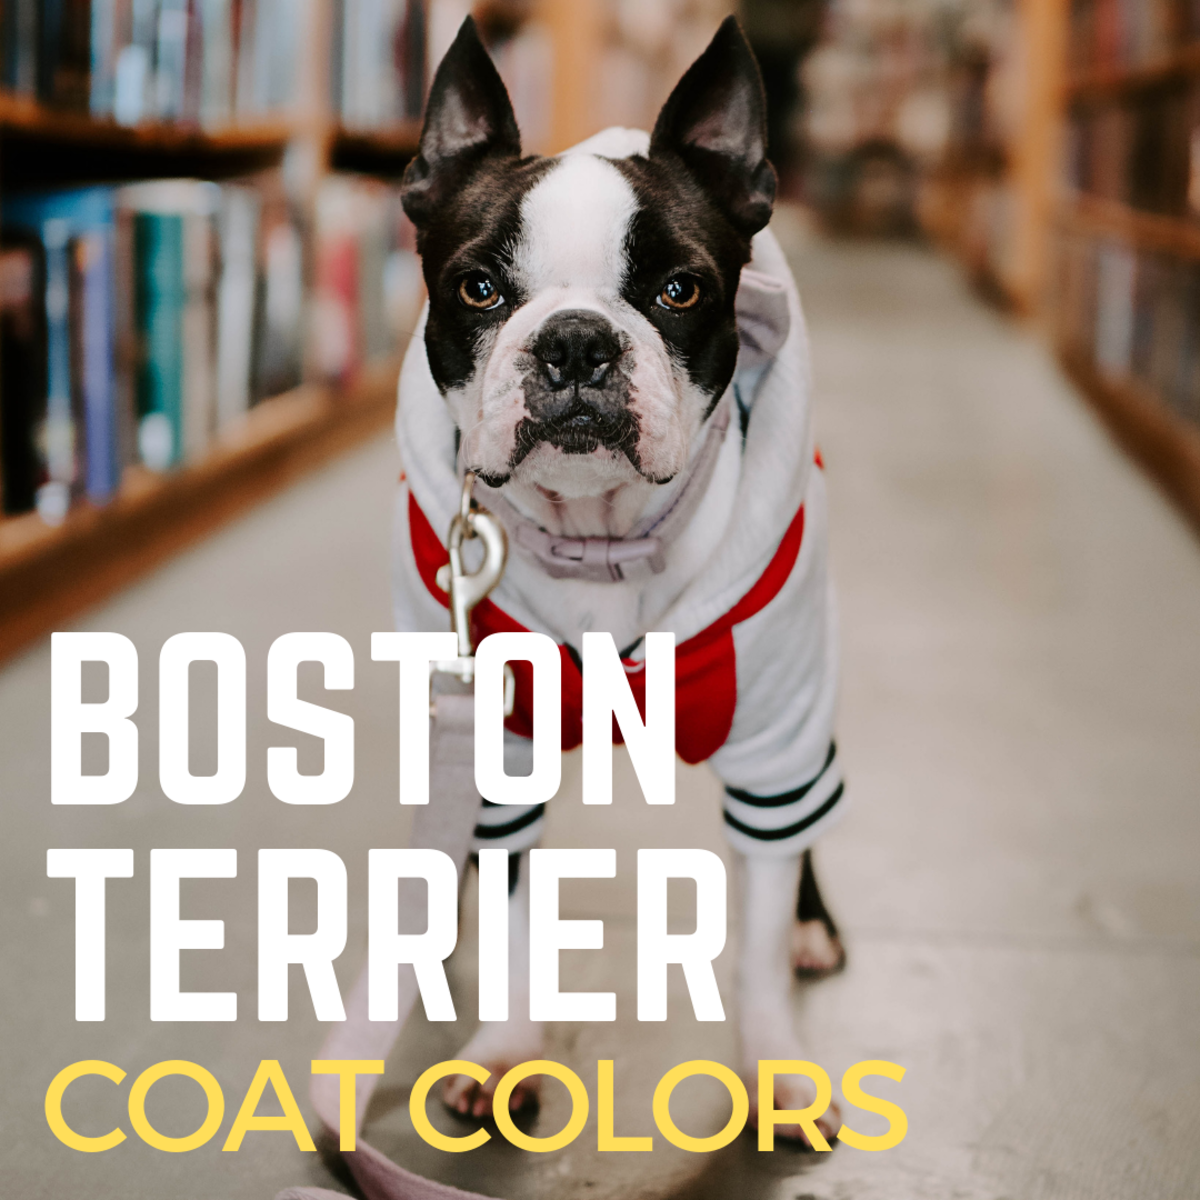 Boston Terrier Coat Colors: All About the Breed